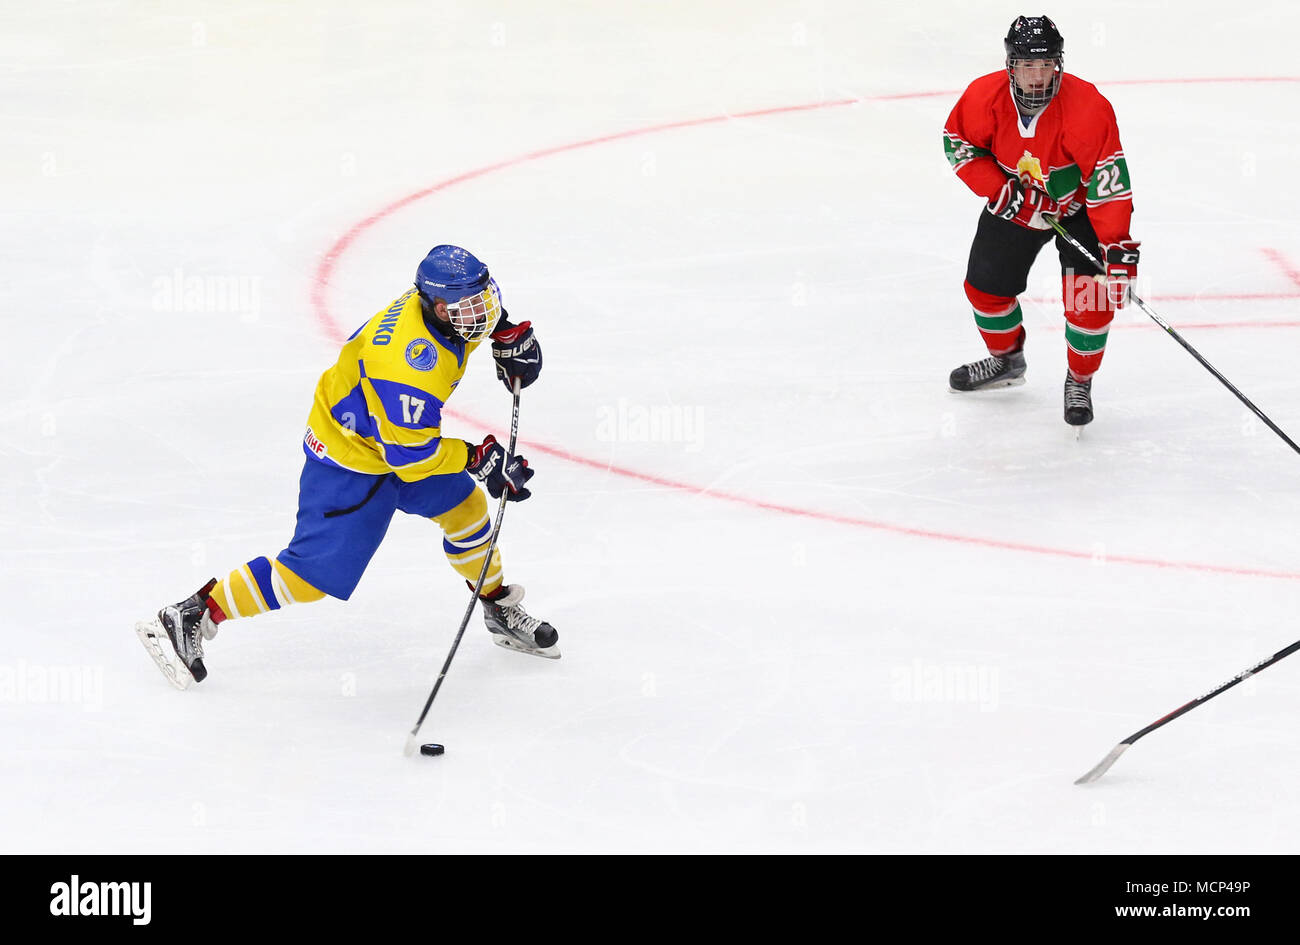 Kiev, Ukraine. 17th April, 2018. Olexander PERESUNKO of Ukraine shots a puck during the IIHF 2018 Ice Hockey U18 World Championship Div 1 Group B game against Hungary at Palace of Sports in Kyiv, Ukraine. Credit: Oleksandr Prykhodko/Alamy Live News - Stock Image